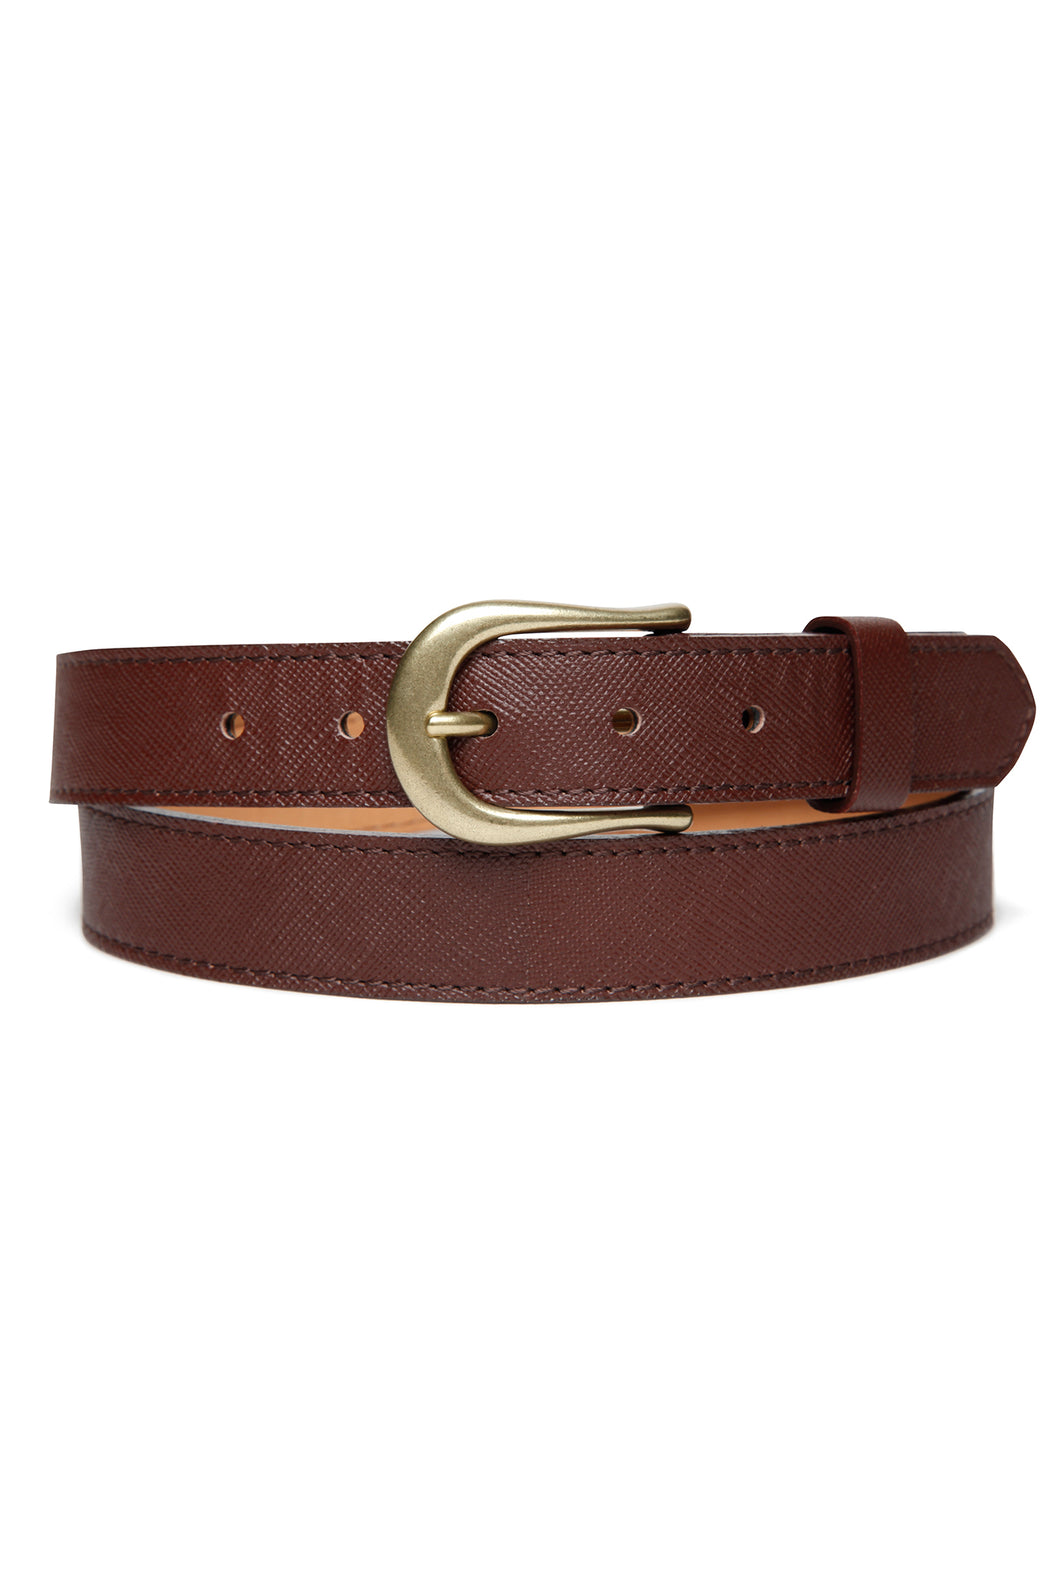 Lot.633 Horsehide Trousers Belt -Brown-